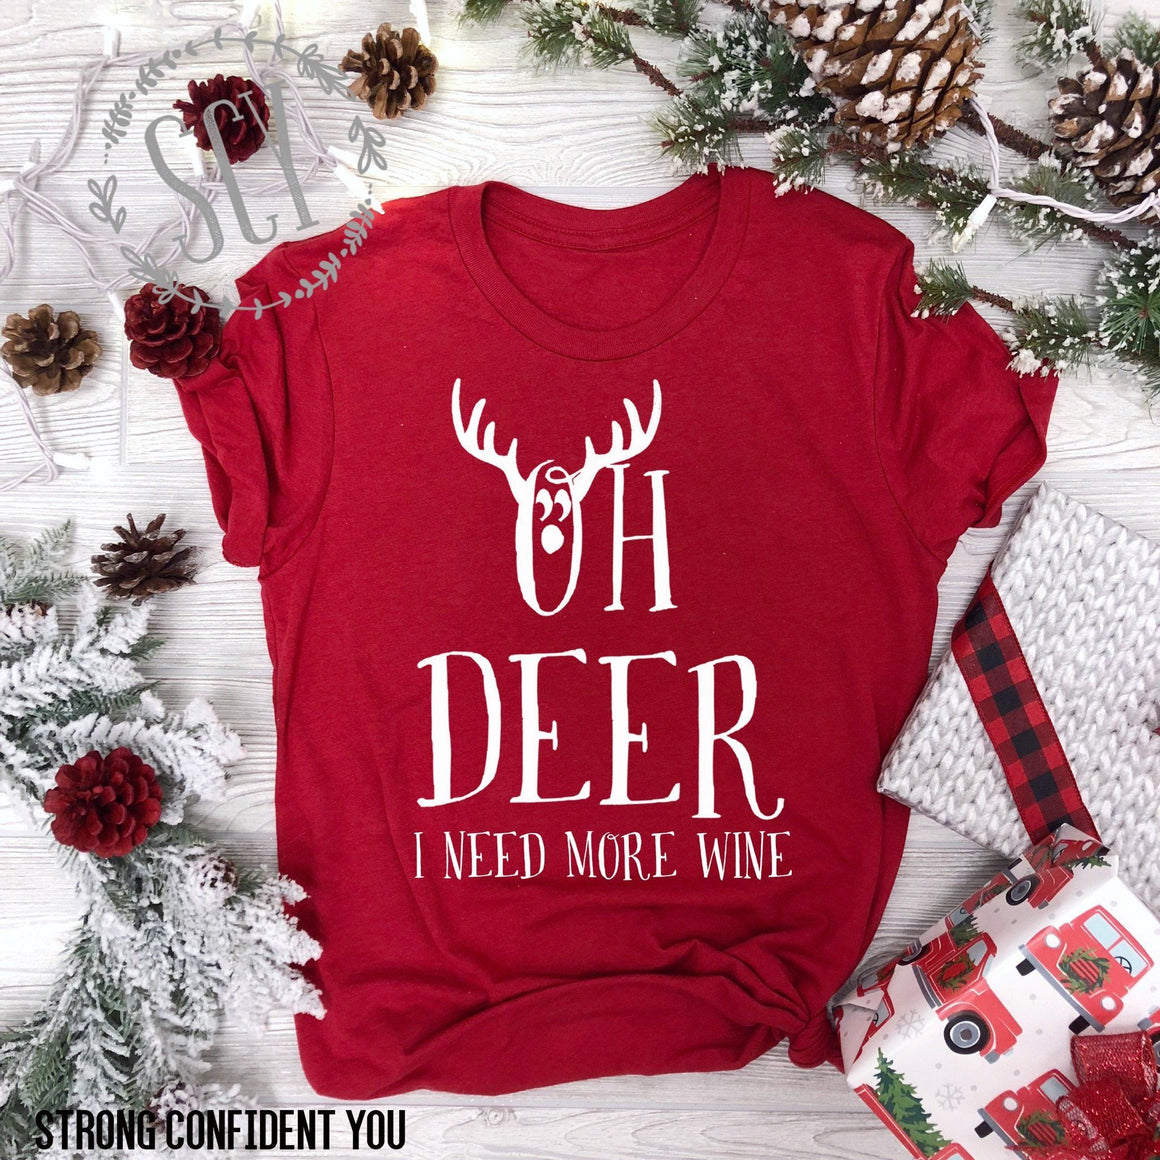 Oh Deer - I Need More Wine